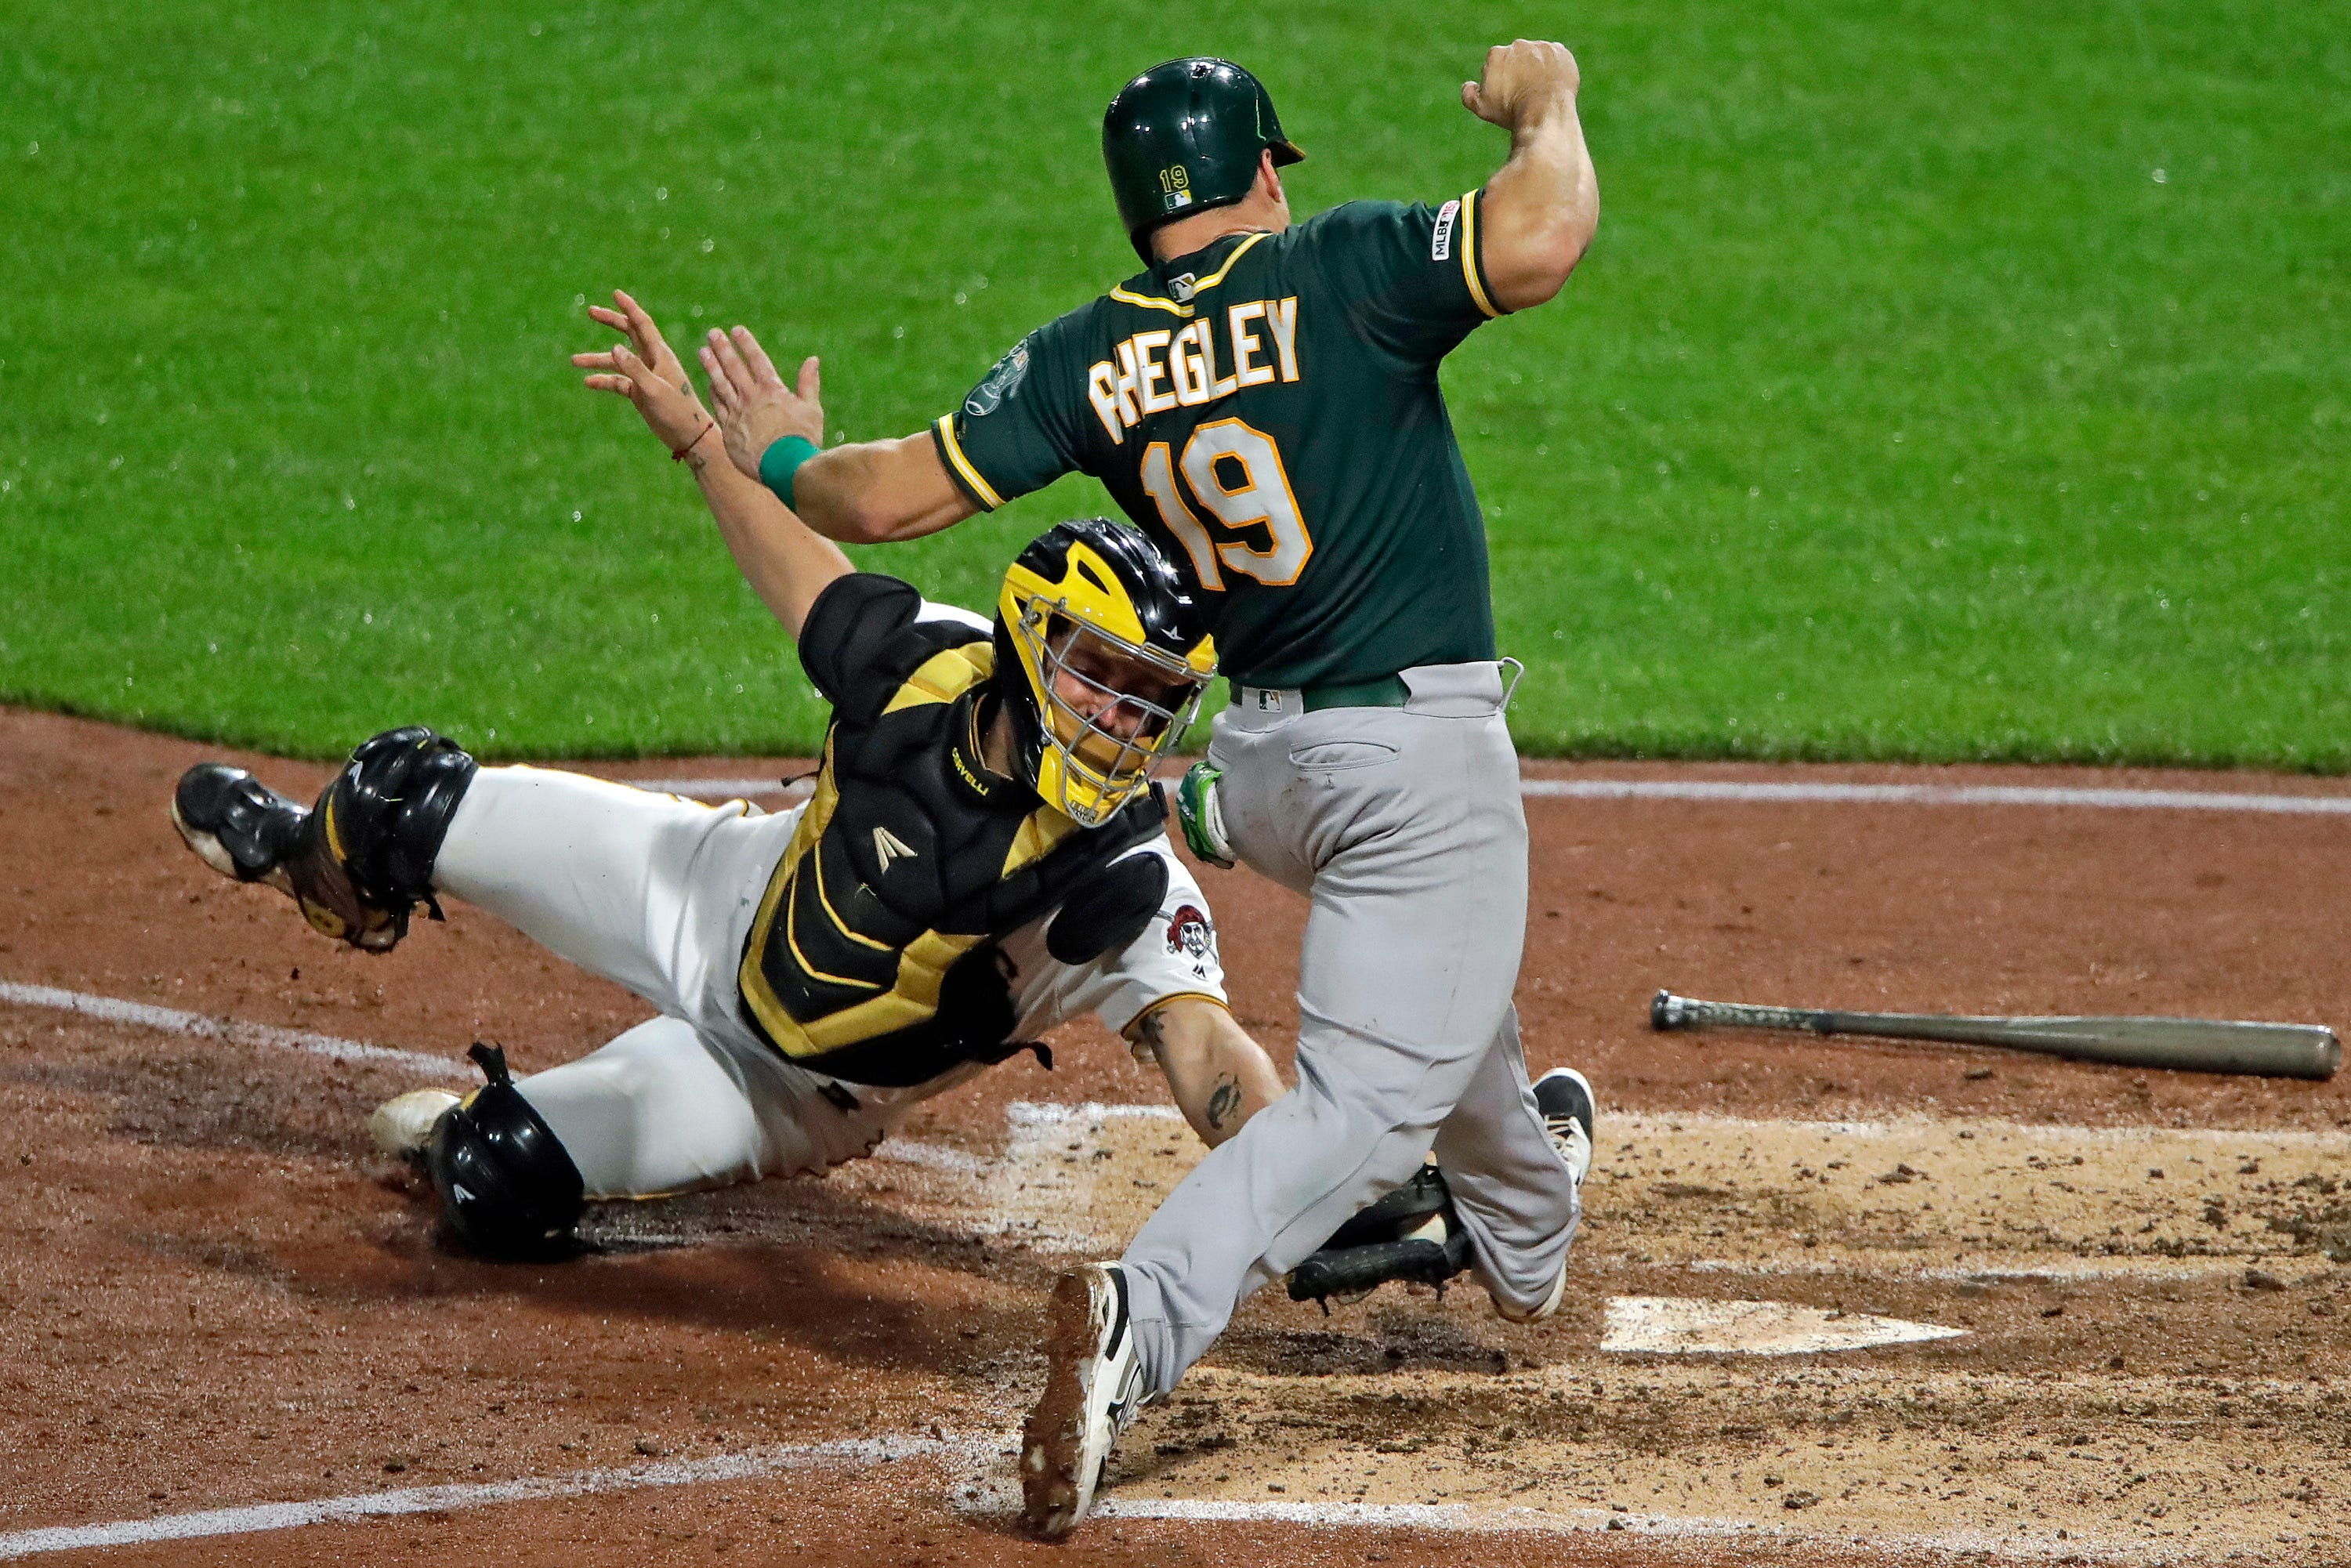 Phegley drives in 8, A's rip Pirates 14-1 to end 6-game skid